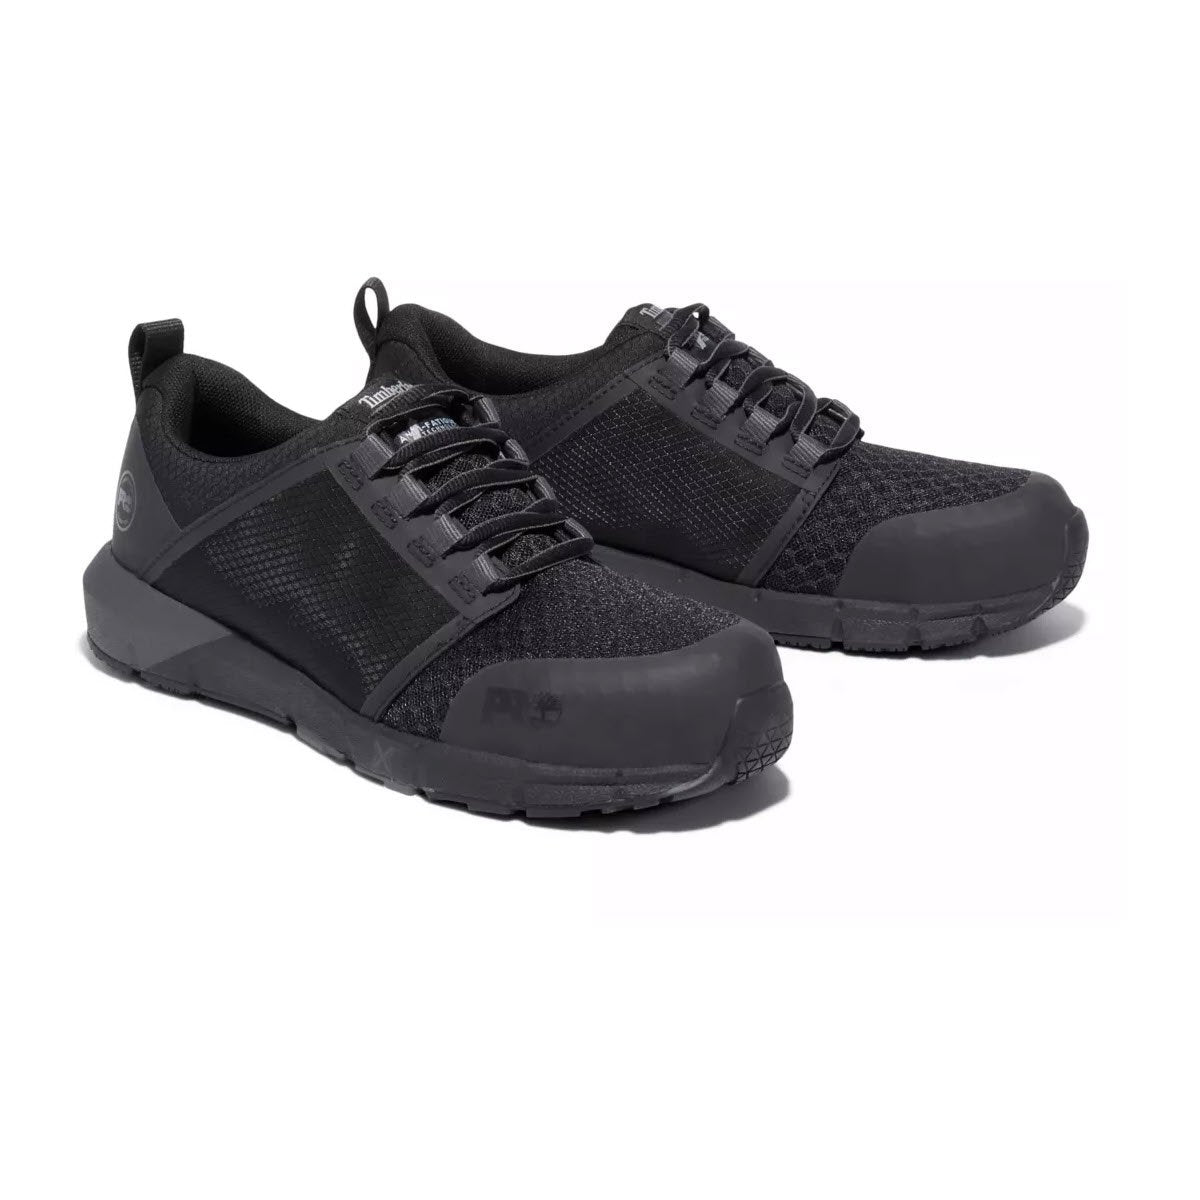 Timberland PRO Radius 0A27W7 Black Mesh Composite Safety Toe Slip Resistant Work Sneaker